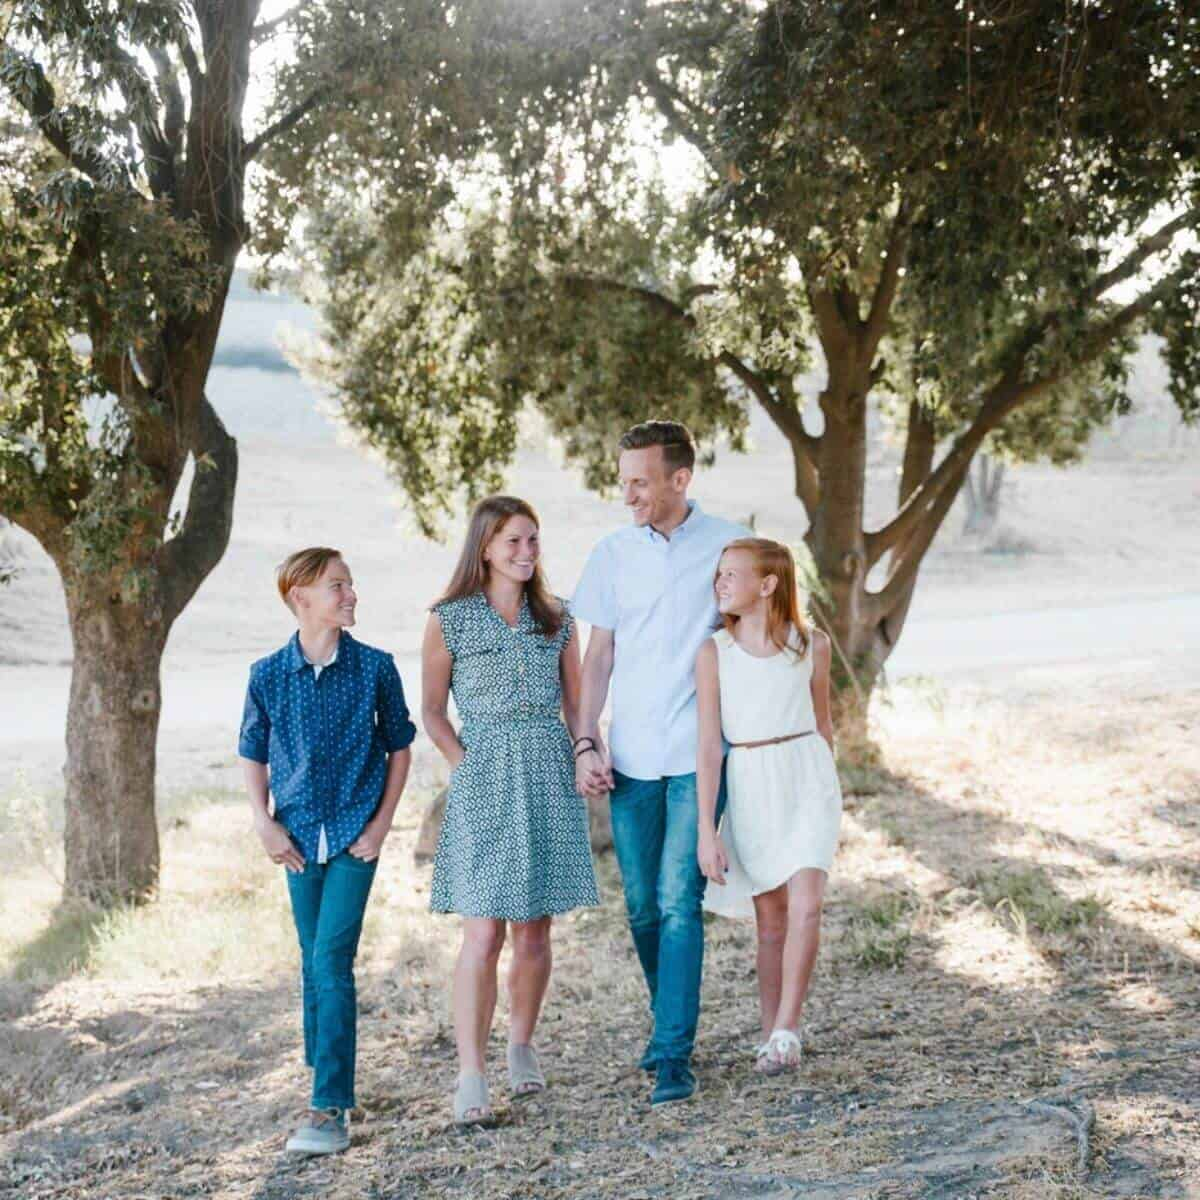 Family of four walking in front of a tree.